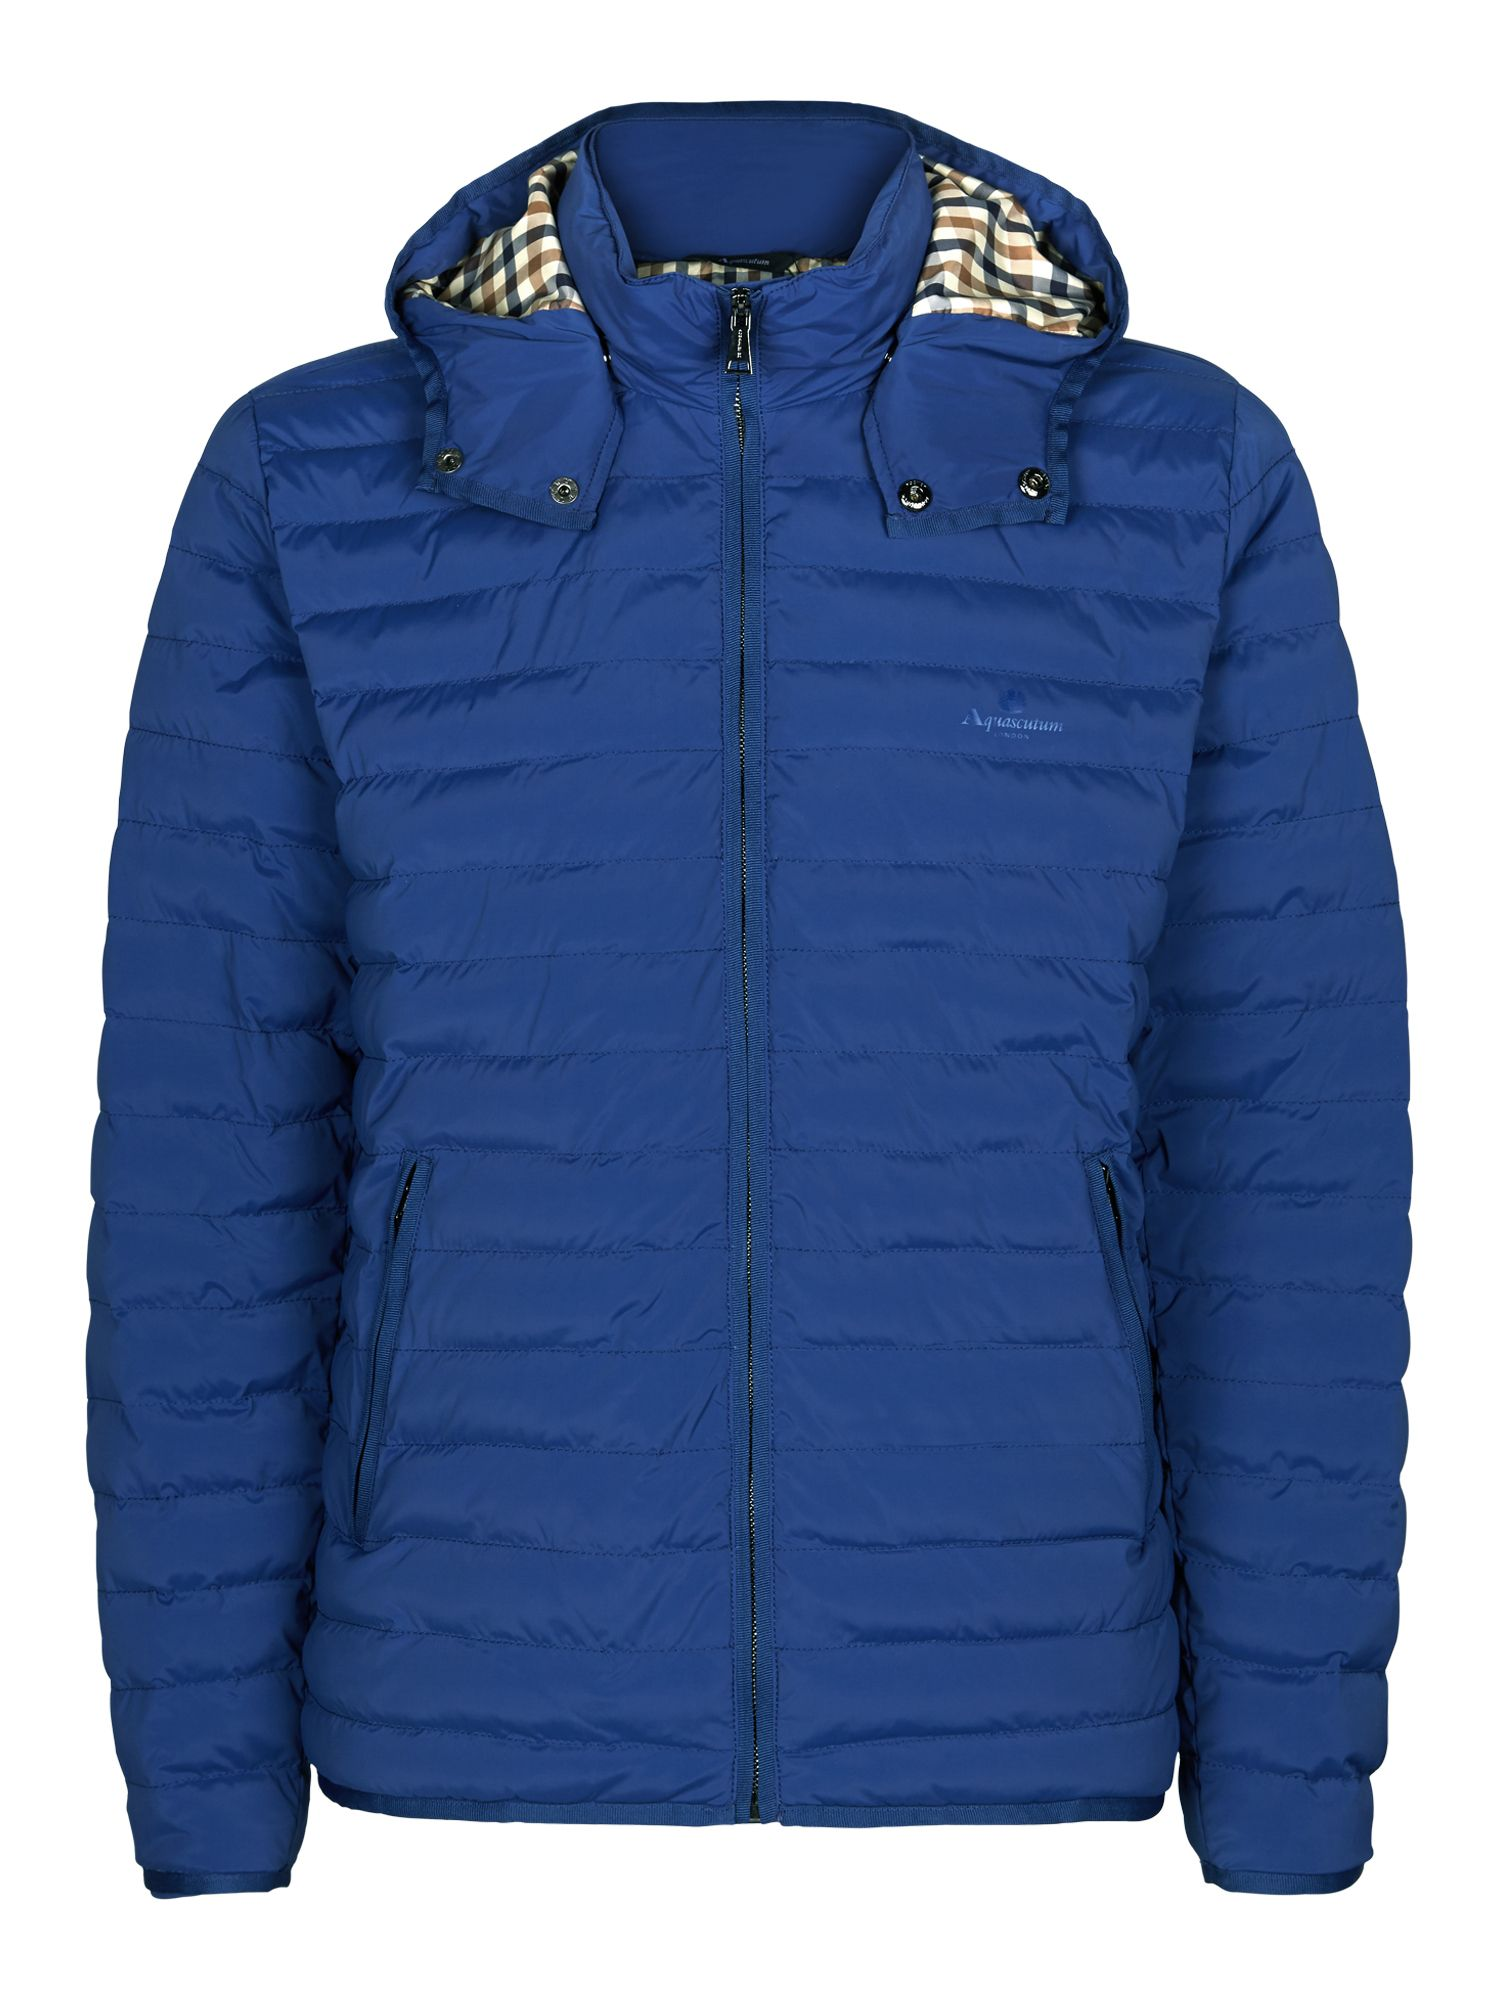 Mens Aquascutum Emmett Quilted Jacket Bright Blue